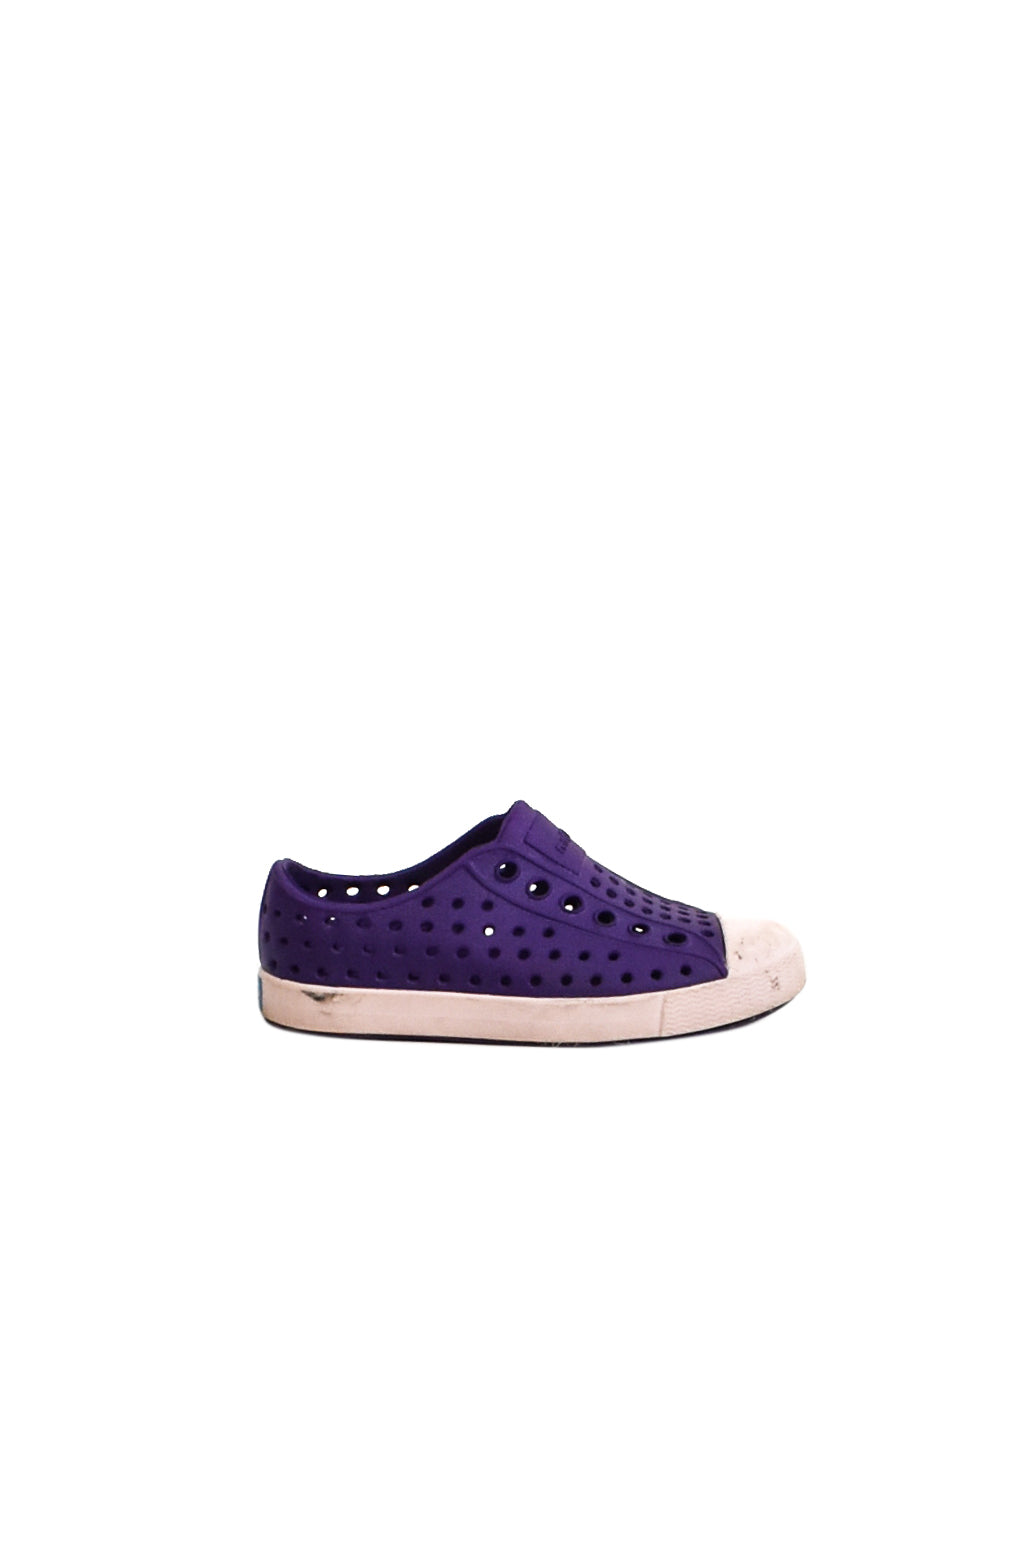 Shoes 18 24m Us 6 Retykle